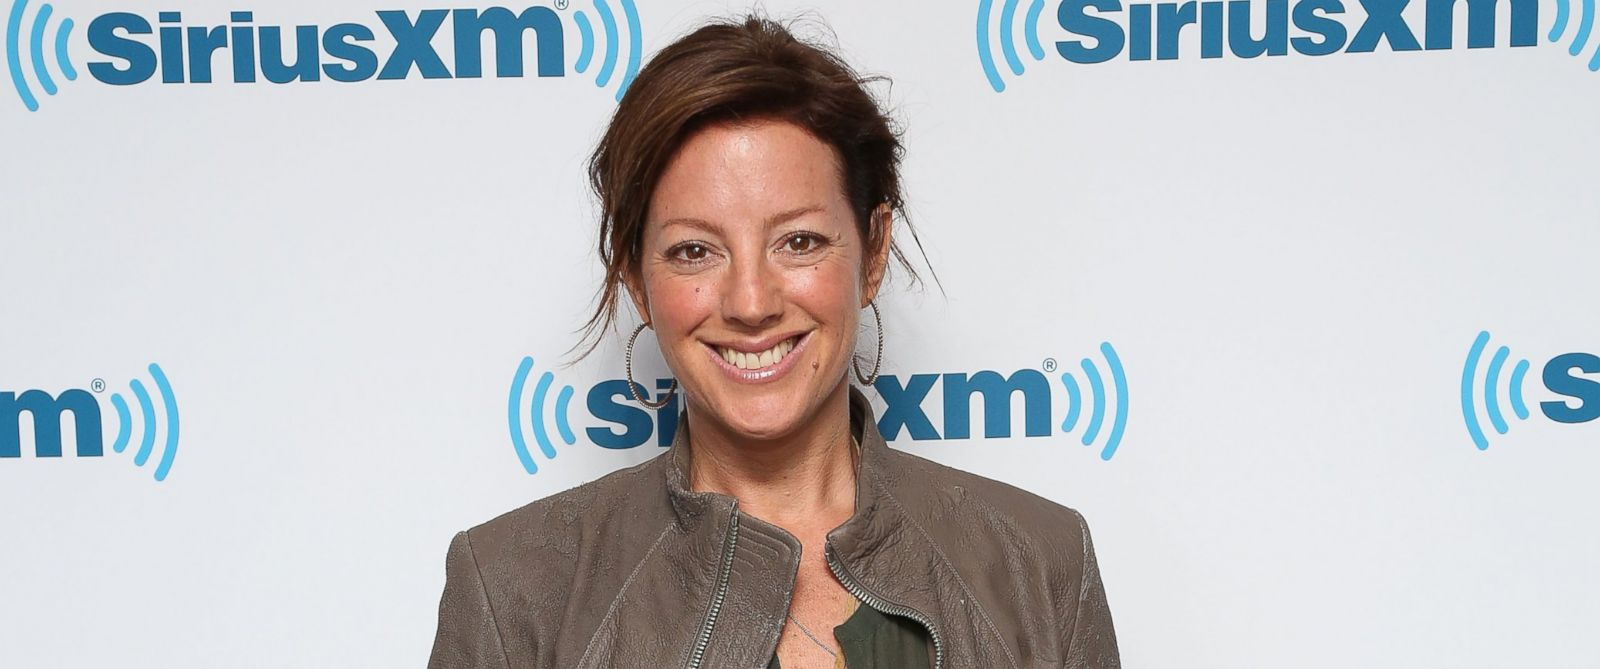 PHOTO: Sarah McLachlan visits the SiriusXM Studios, May 6, 2014, in New York City.